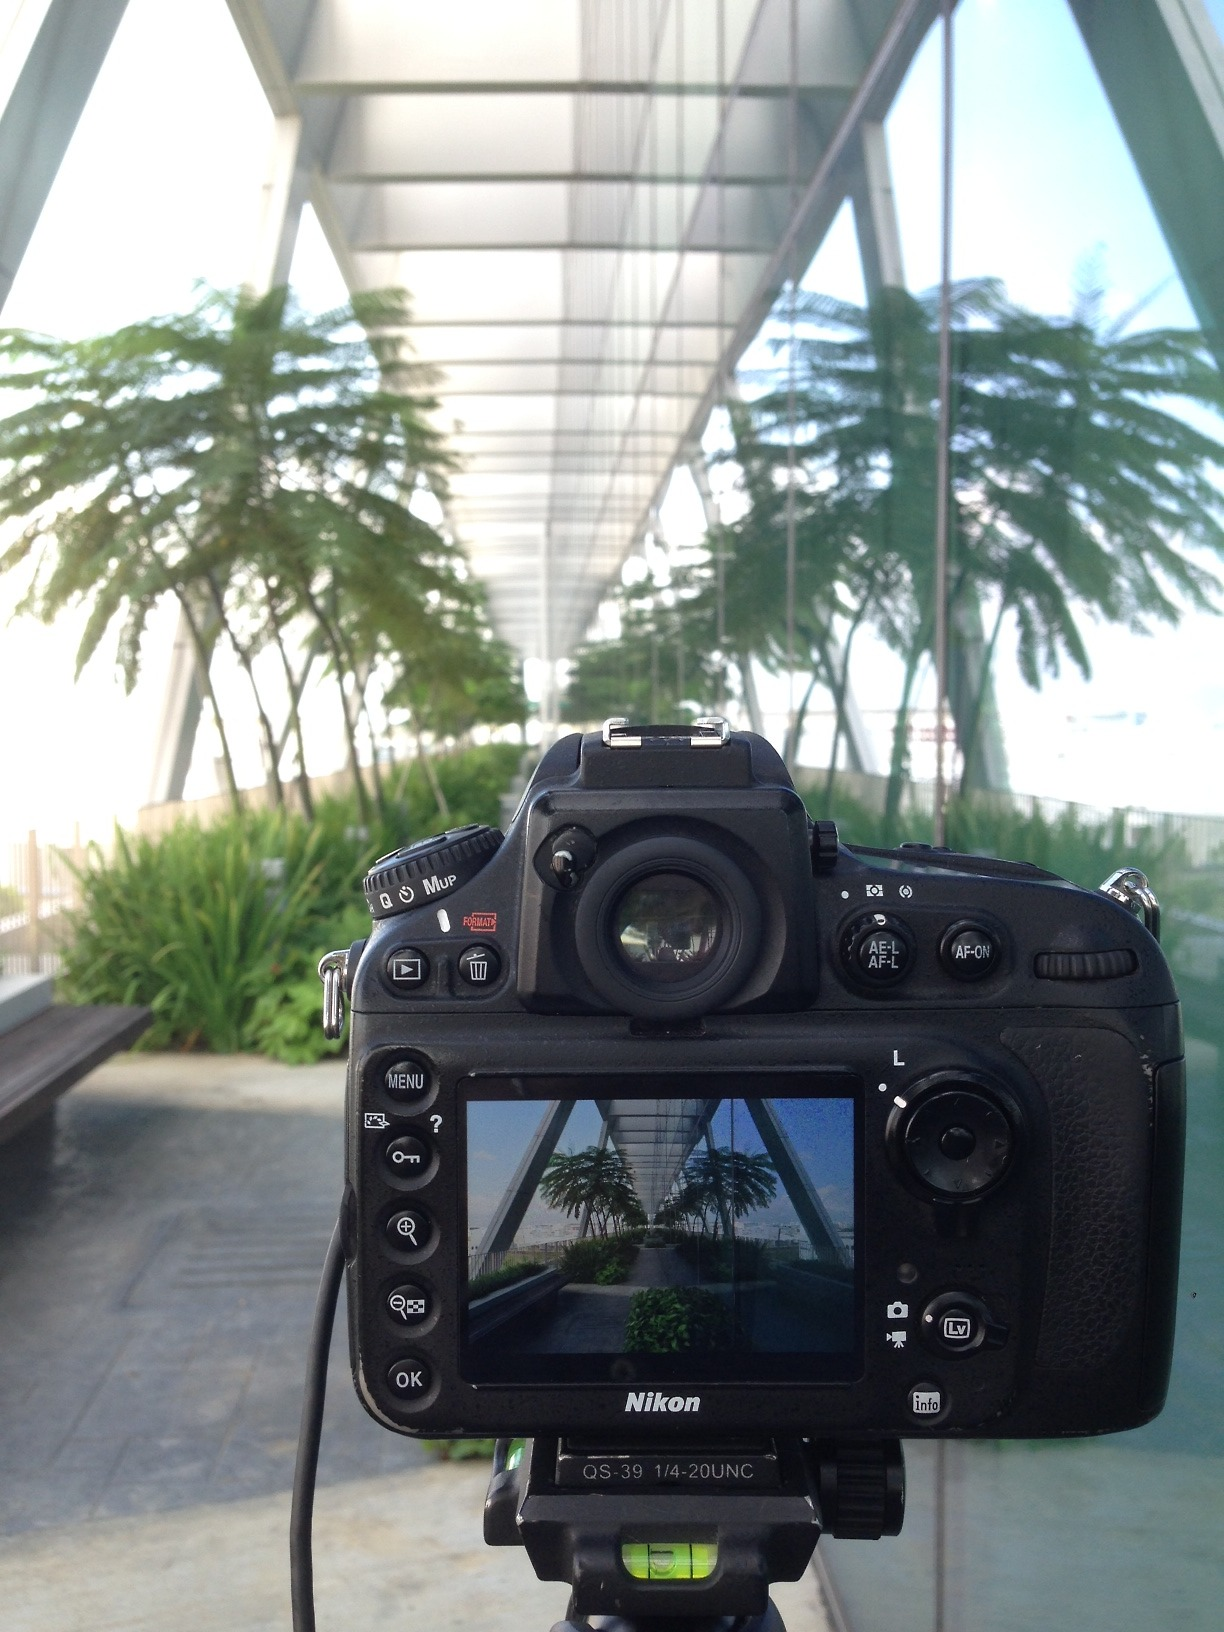 Great Architecture Shoot today at Changi Business Park